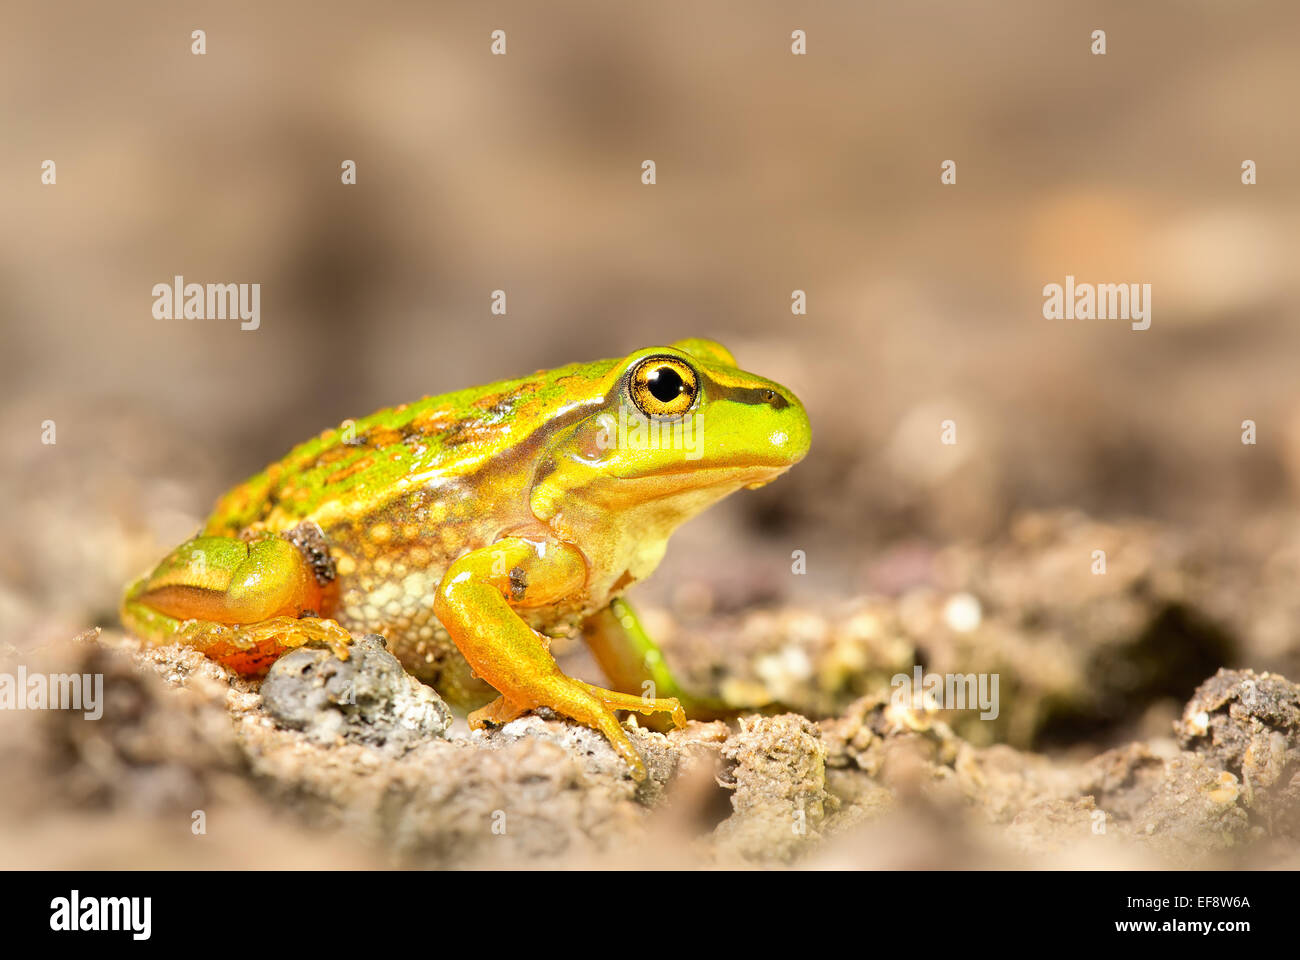 Australia, Victoria, Growling grass frog sitting on dirt - Stock Image